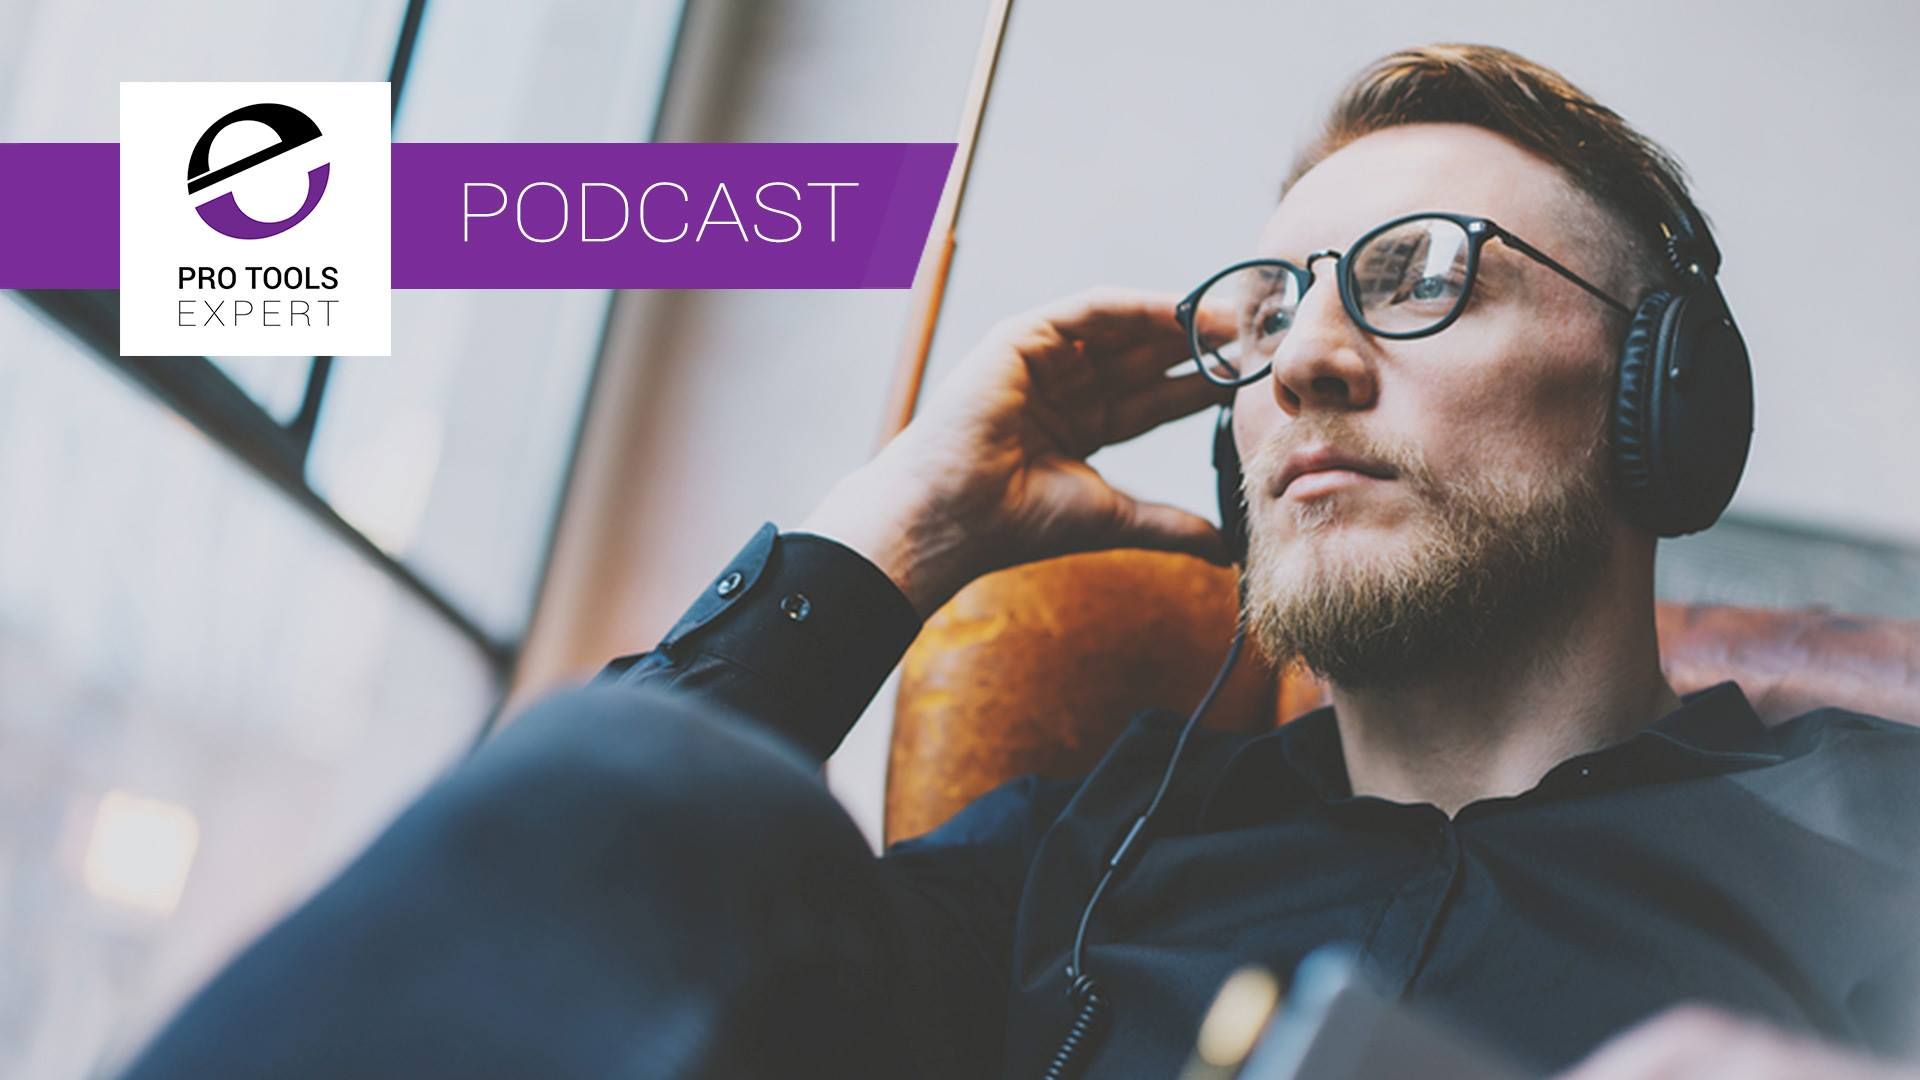 Pro Tools Expert Podcast Episode 248